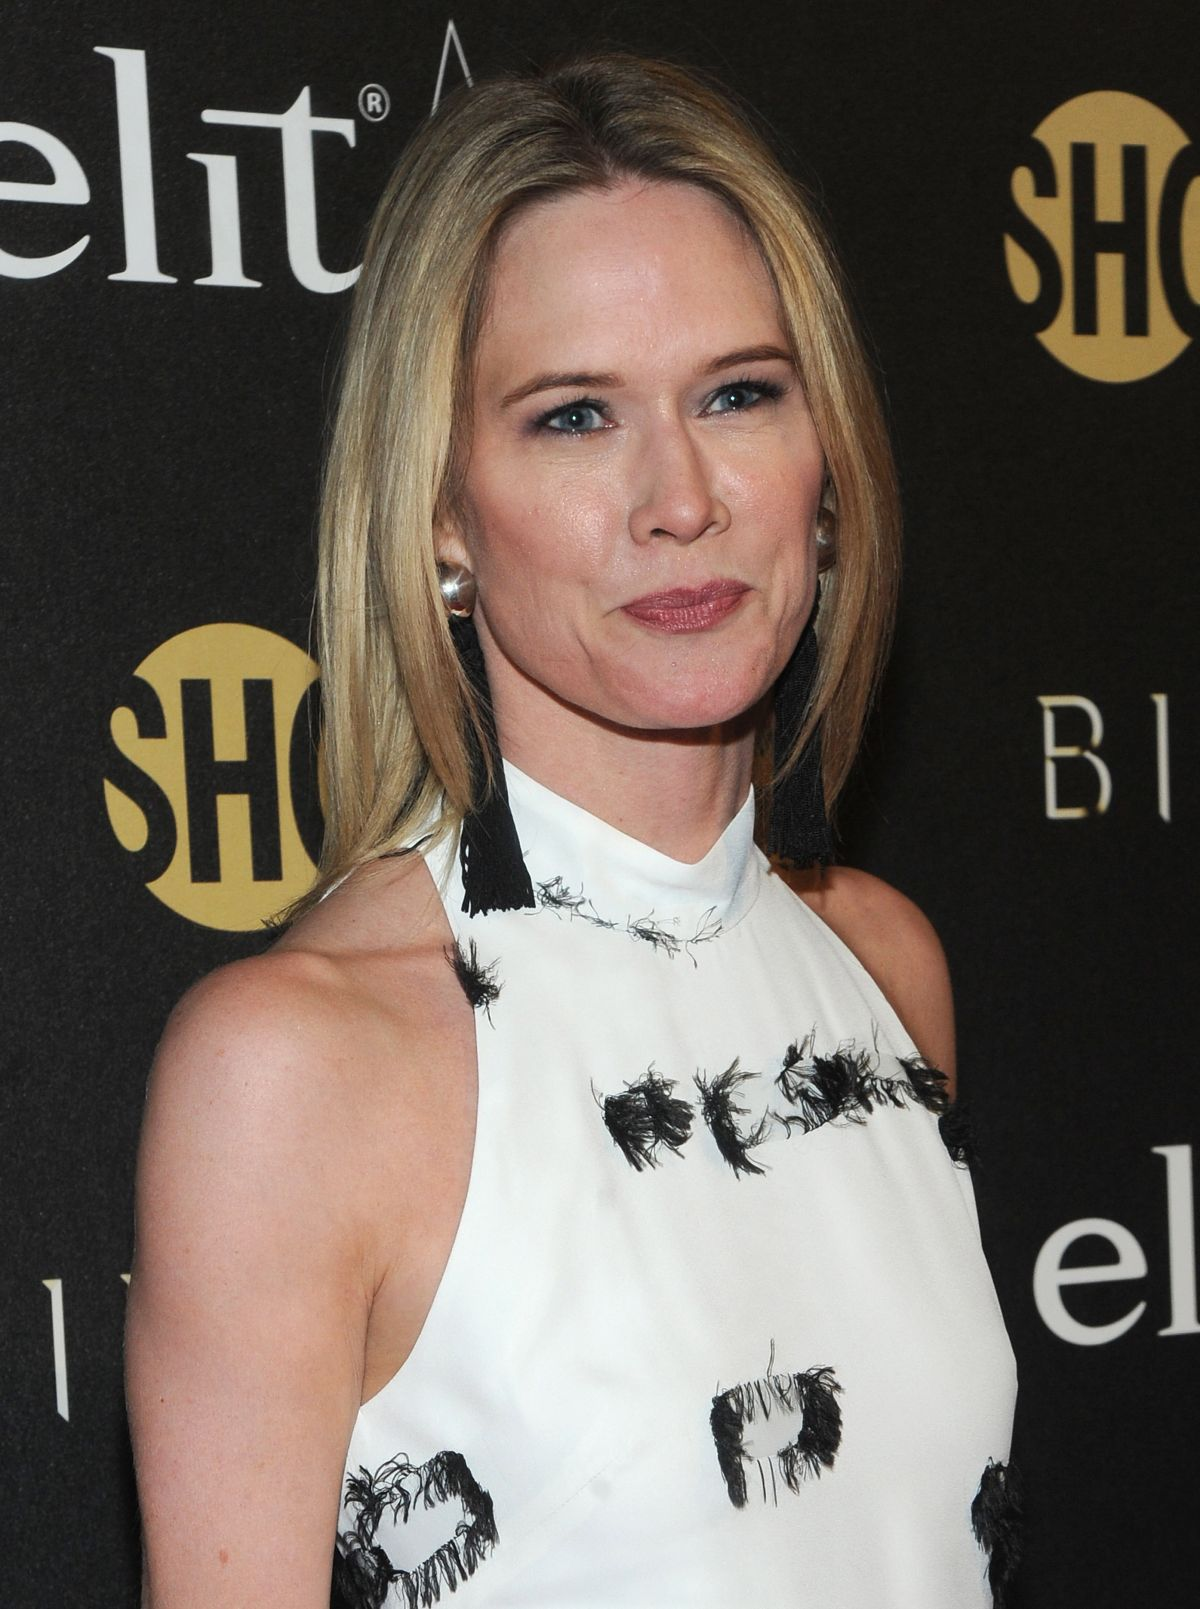 STEPHANIE MARCH at 'Billions' Season 2 Premiere in New York 02/13/2017